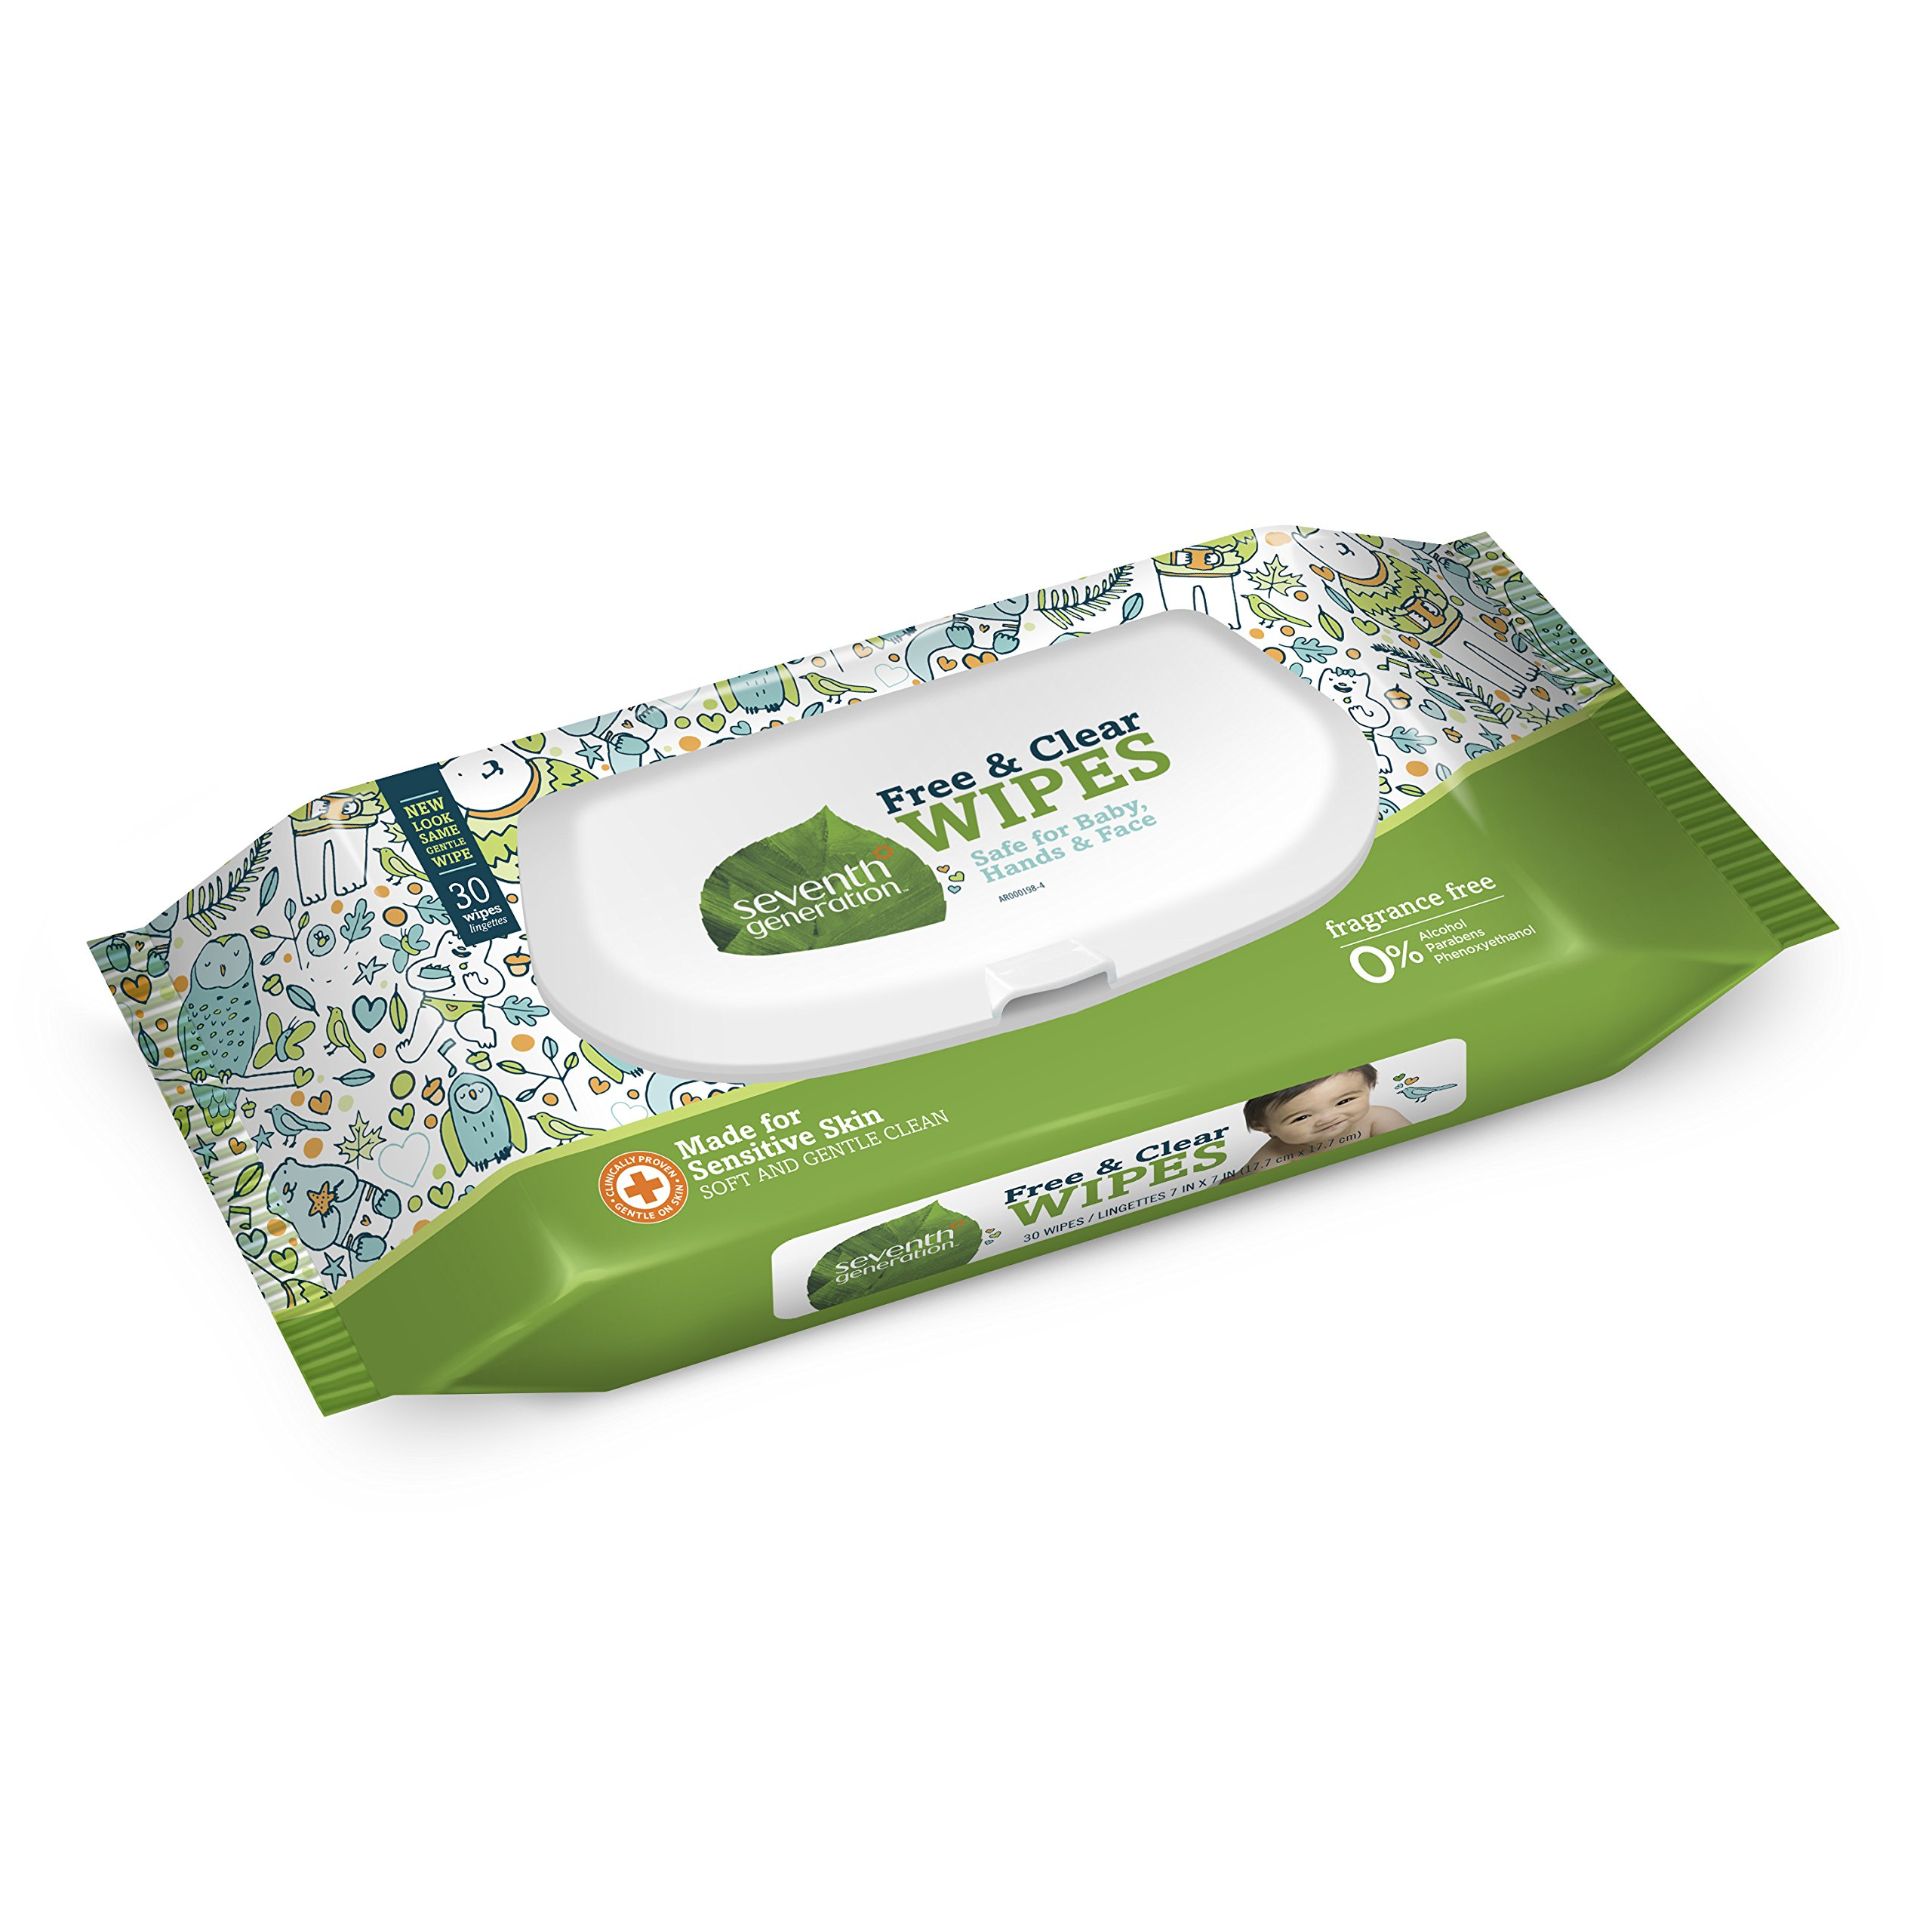 Seventh Generation Baby Wipes, Free & Clear with Flip Top Dispenser, 30 count Travel Pack